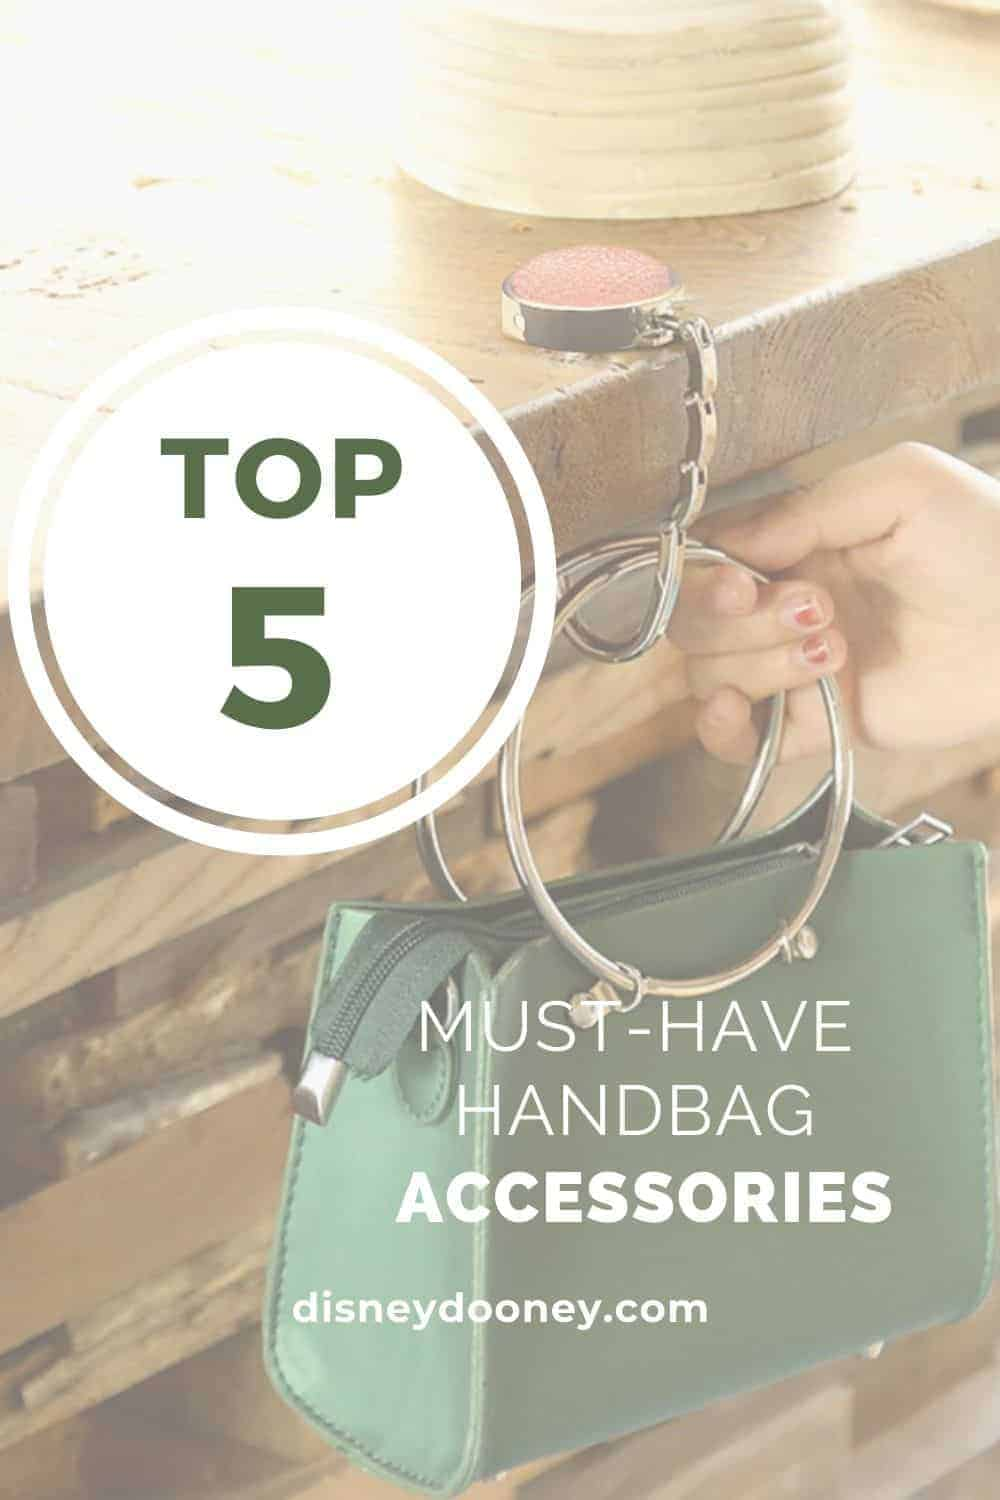 Pin me - Top 5 Must-Have Handbag Accessories